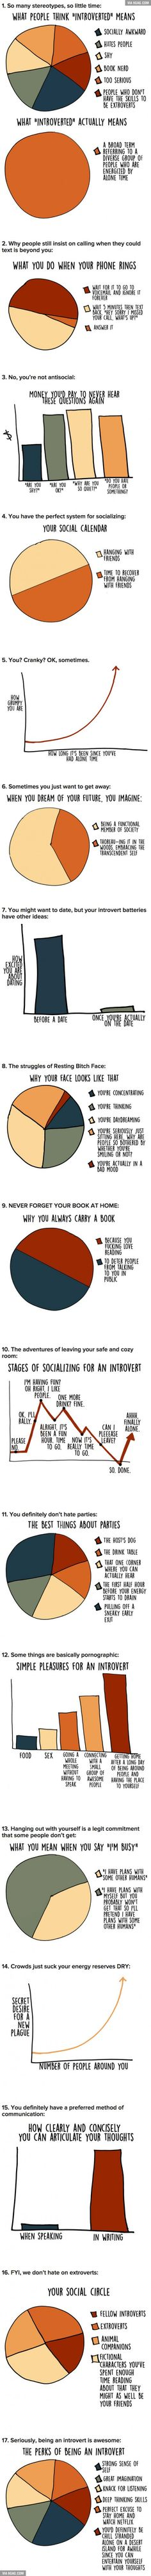 17 graphs explaining what being introvert really means... Thank you for this..